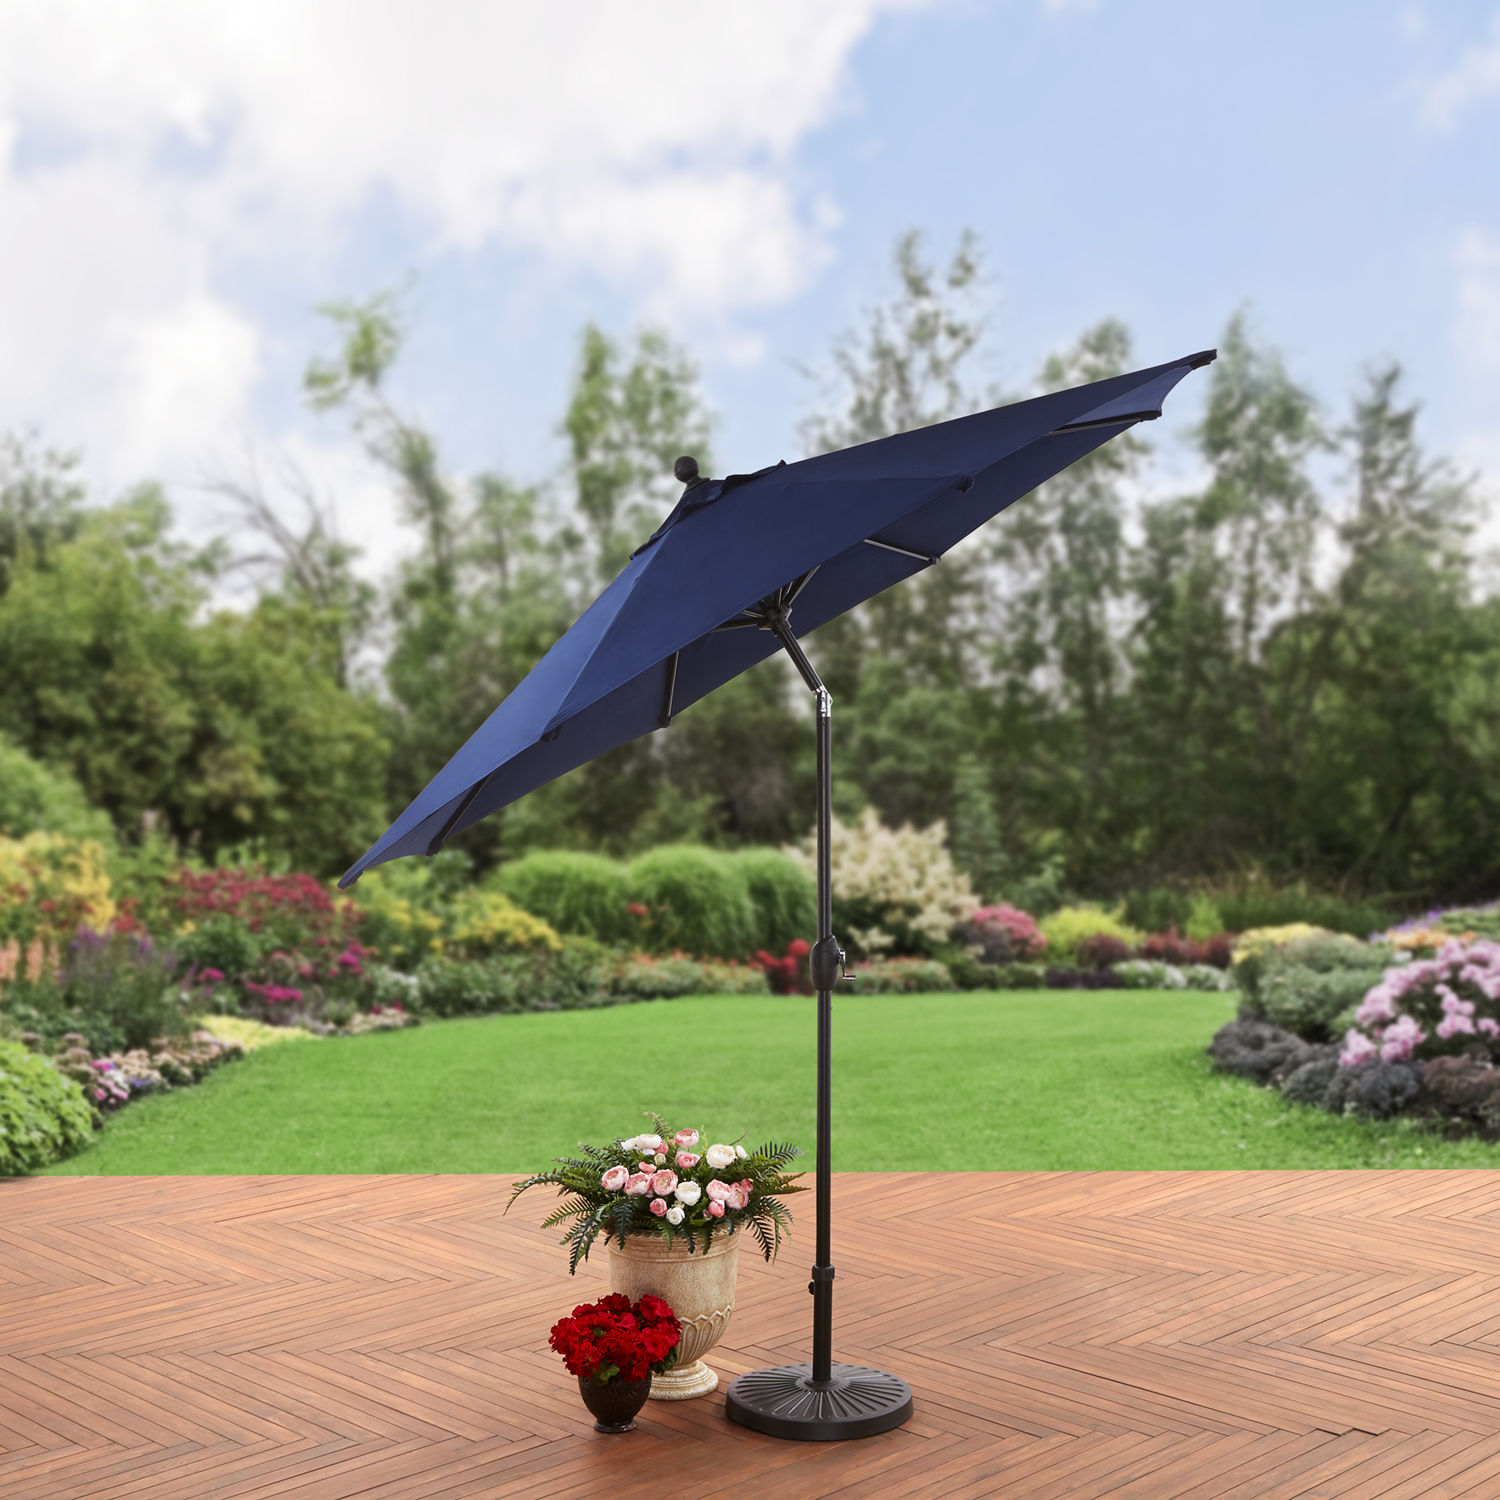 Better Homes and Gardens 9ft Aluminum Umbrella SDA Push Button Tilt by NINGBO EVERLUCK OUTDOOR PRODUCTS MANUFACTING CO LTD